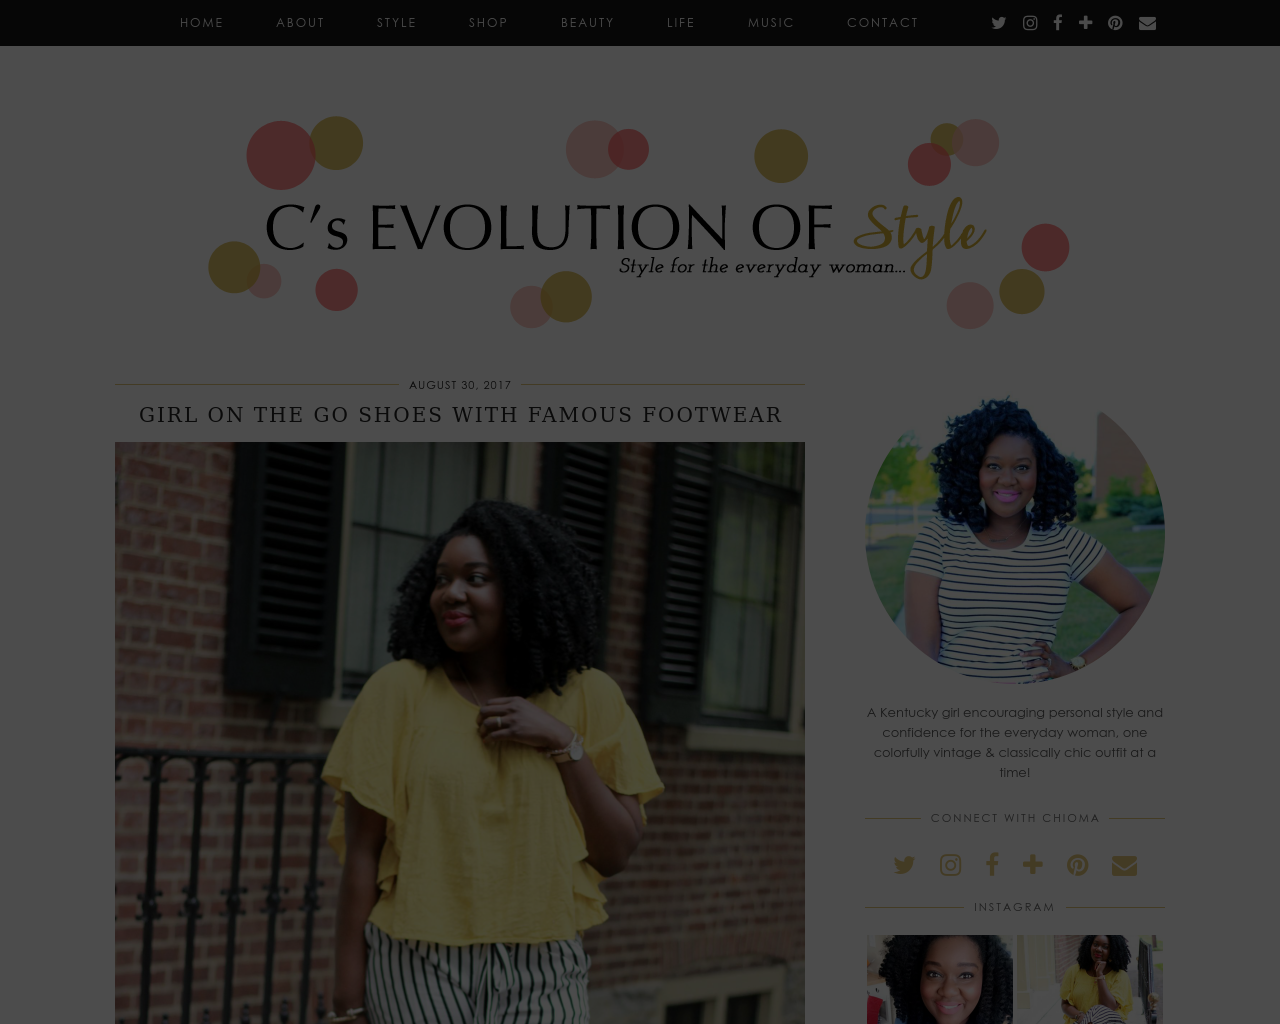 Chioma's-Evolution-Of-Style-Advertising-Reviews-Pricing